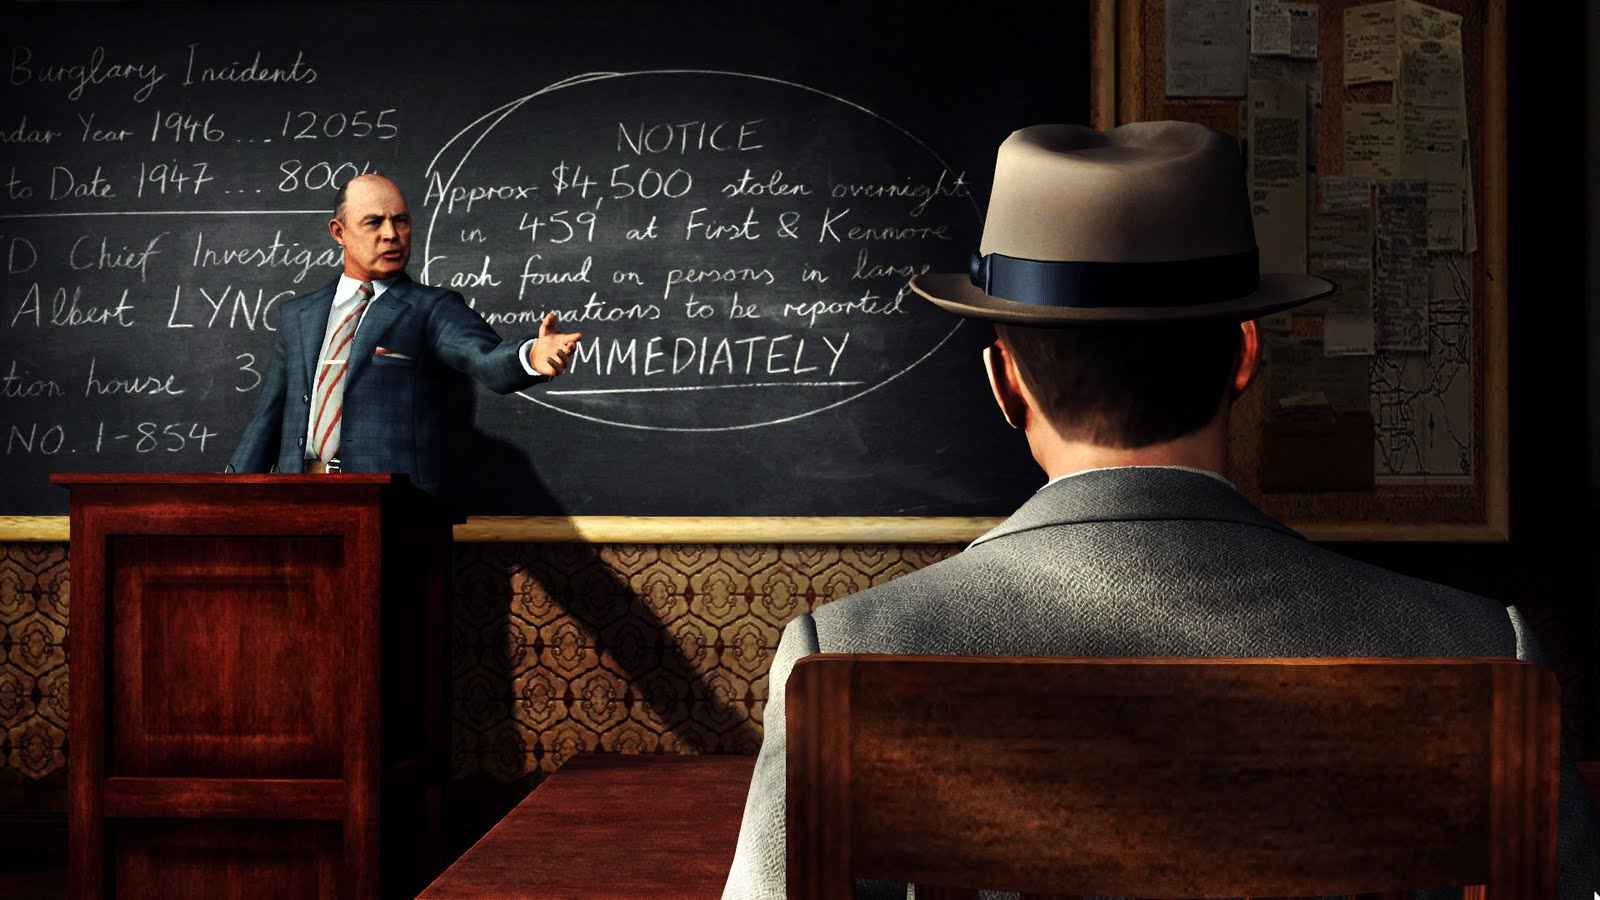 L.A.Noire.The.Complete.Edition.v1.0.2393.1.multi5.cracked.READ.NFO-THETA--12-221259.jpg